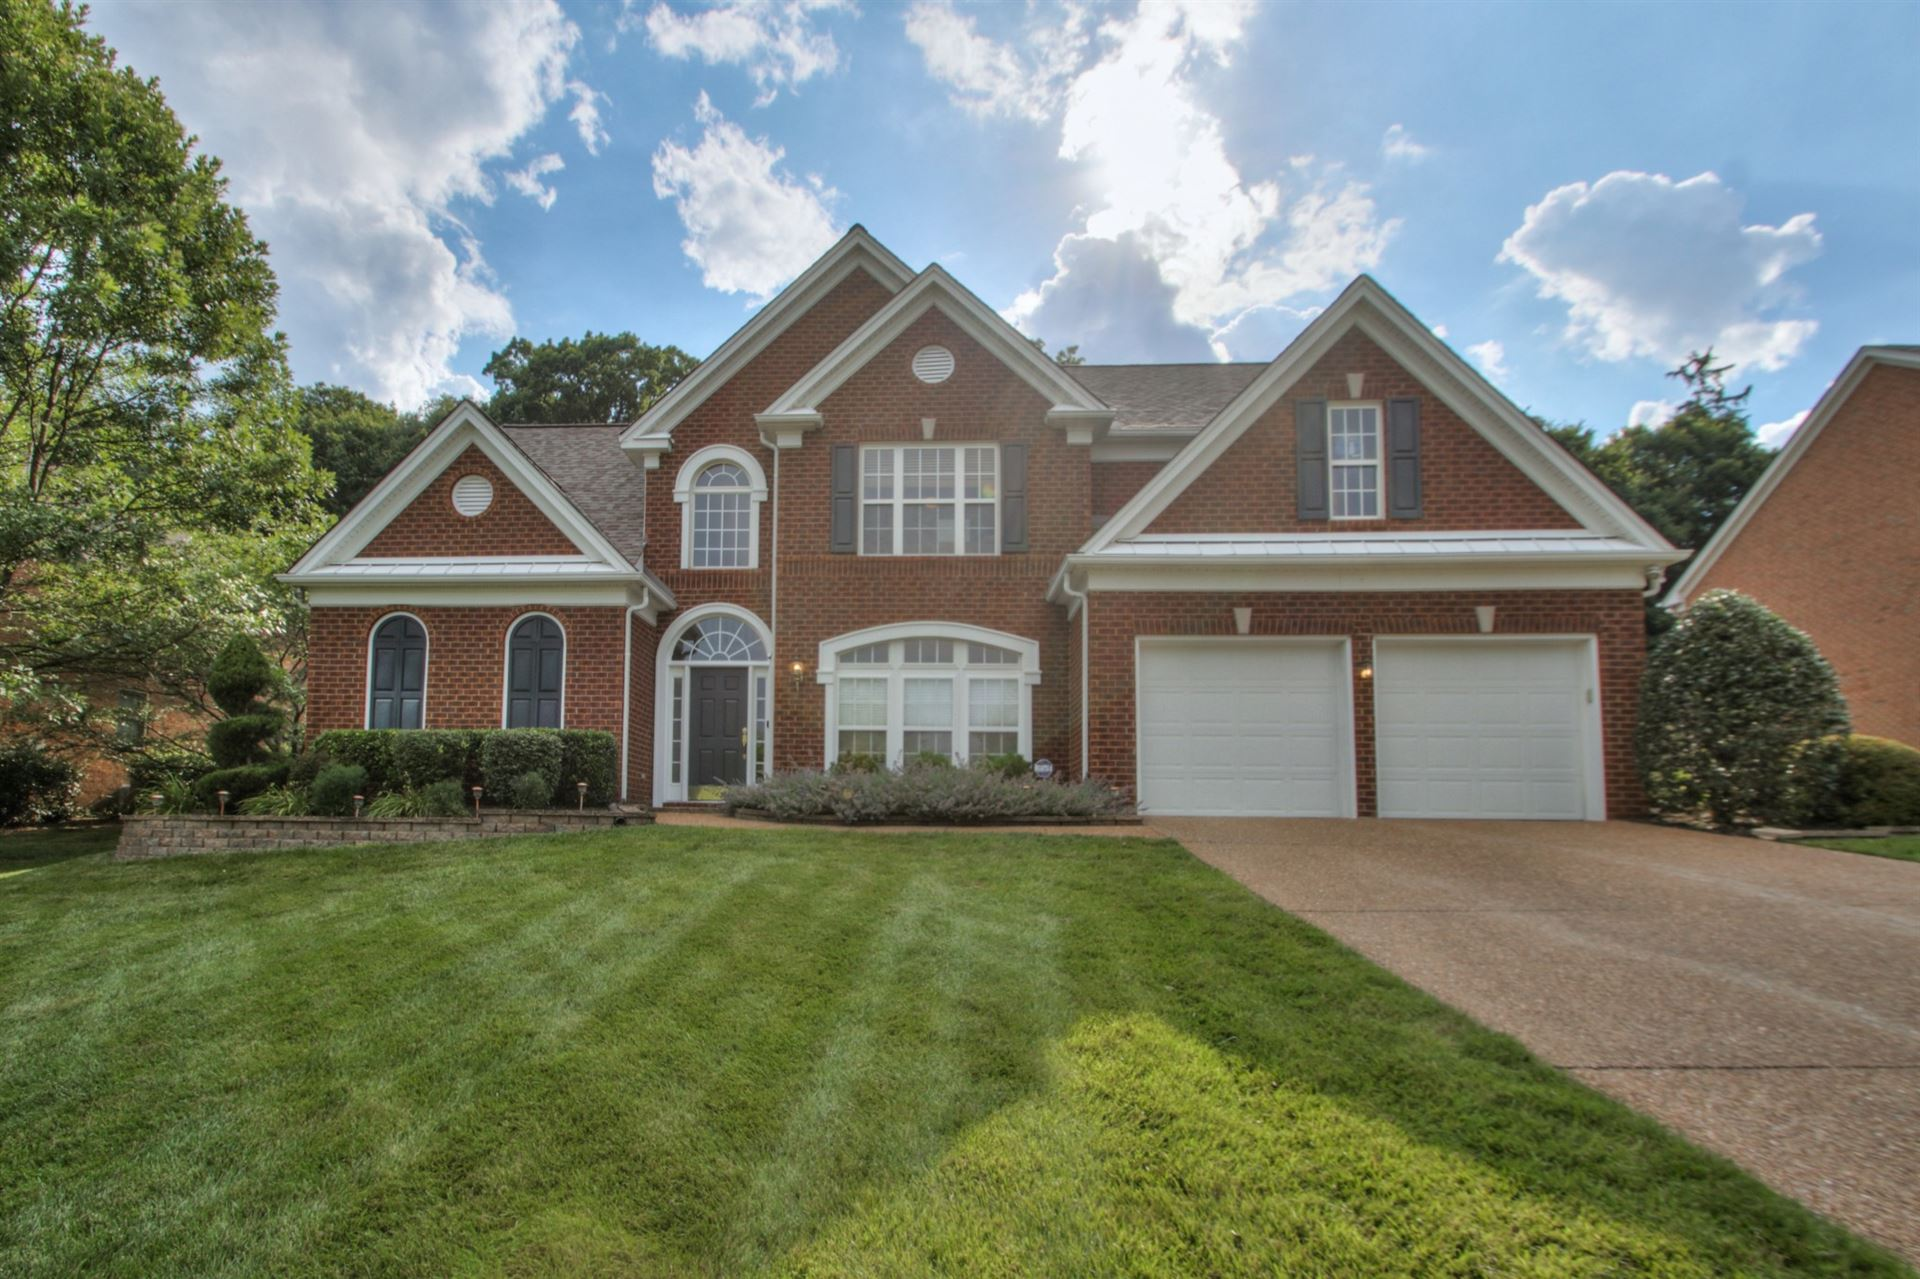 Photo of 1529 Richlawn Dr, Brentwood, TN 37027 (MLS # 2162597)